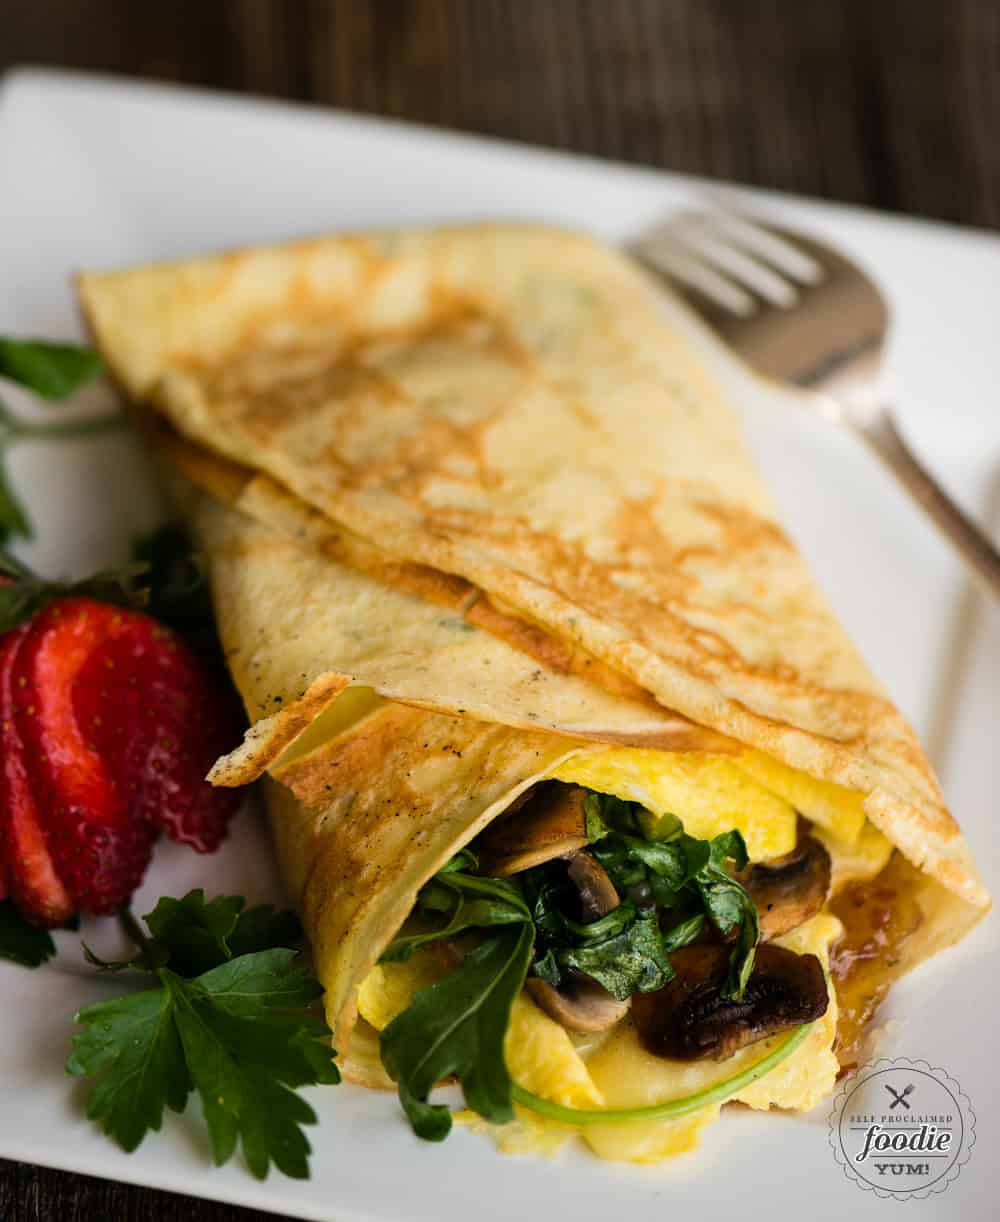 Recipe for Savory Breakfast Crepes with eggs, veggies, cheese, and bourbon bacon jam